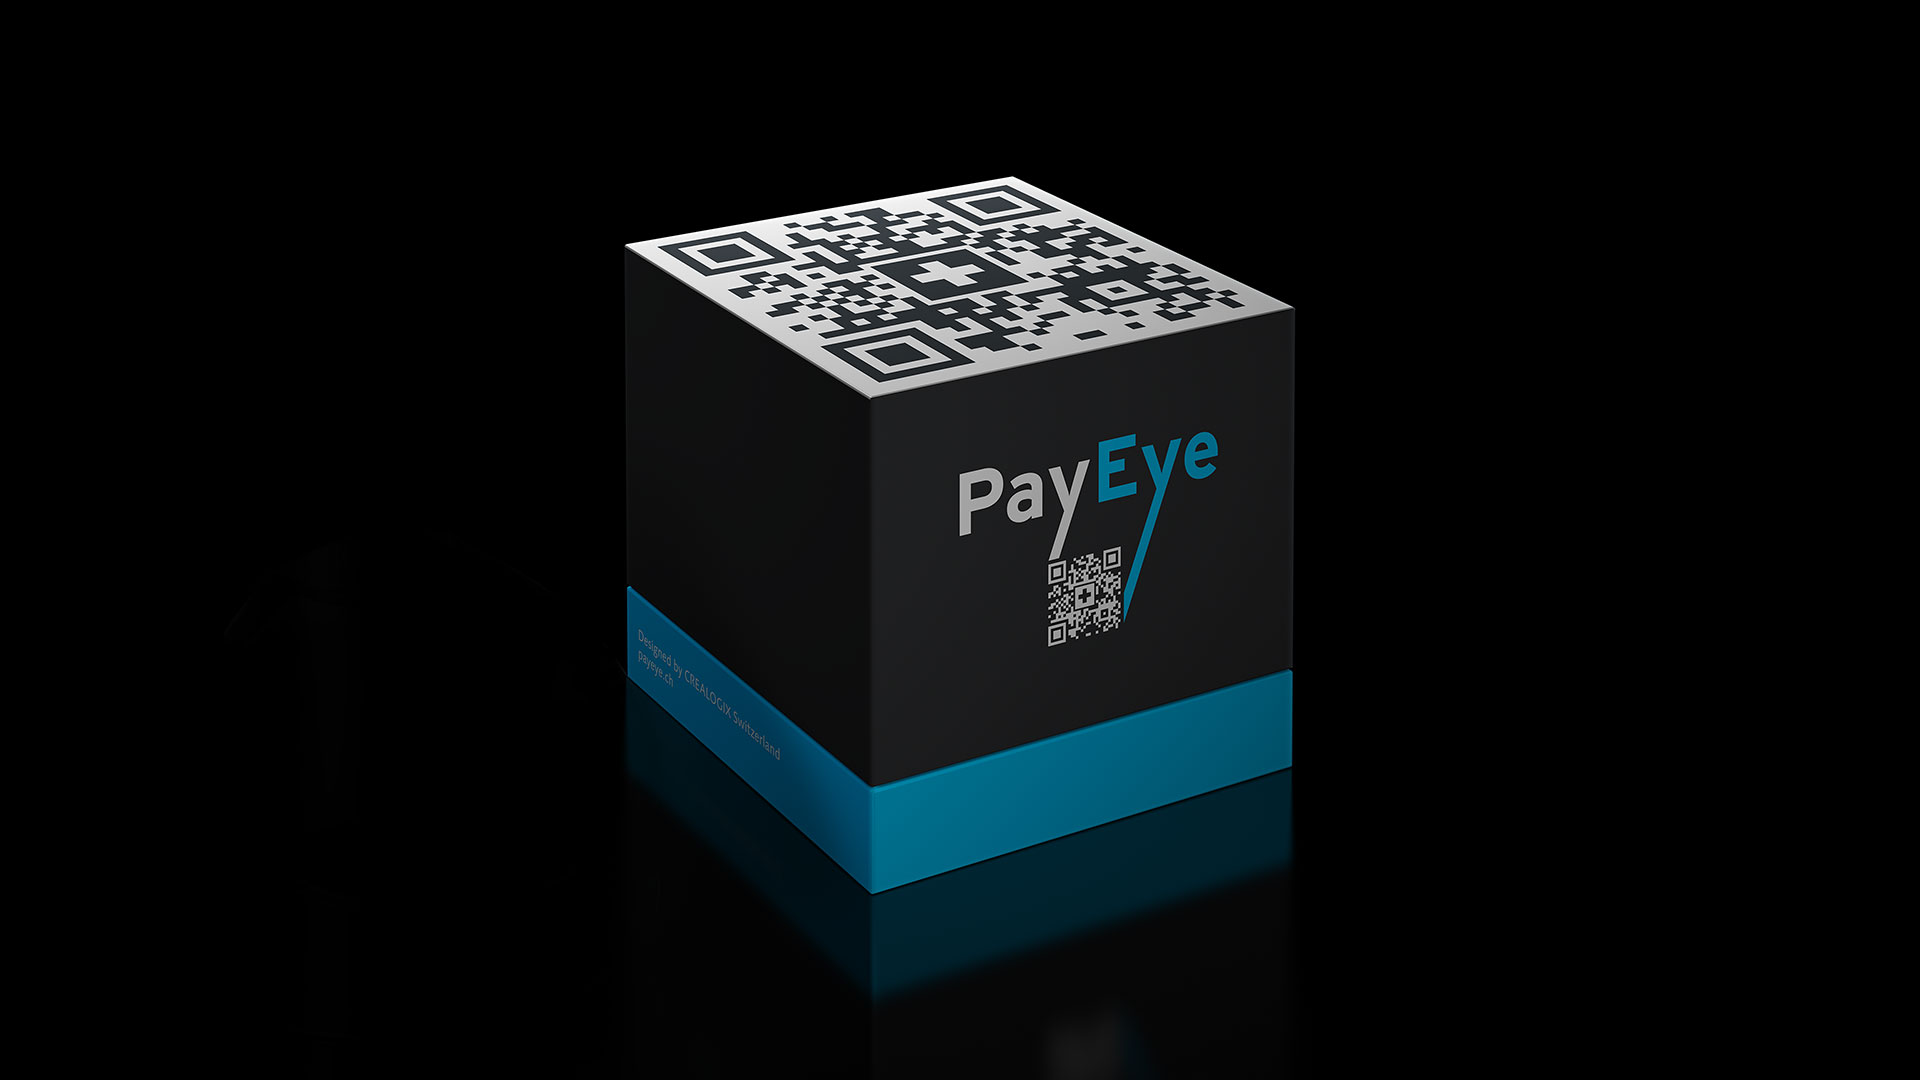 blokstudio_PayEye_Package